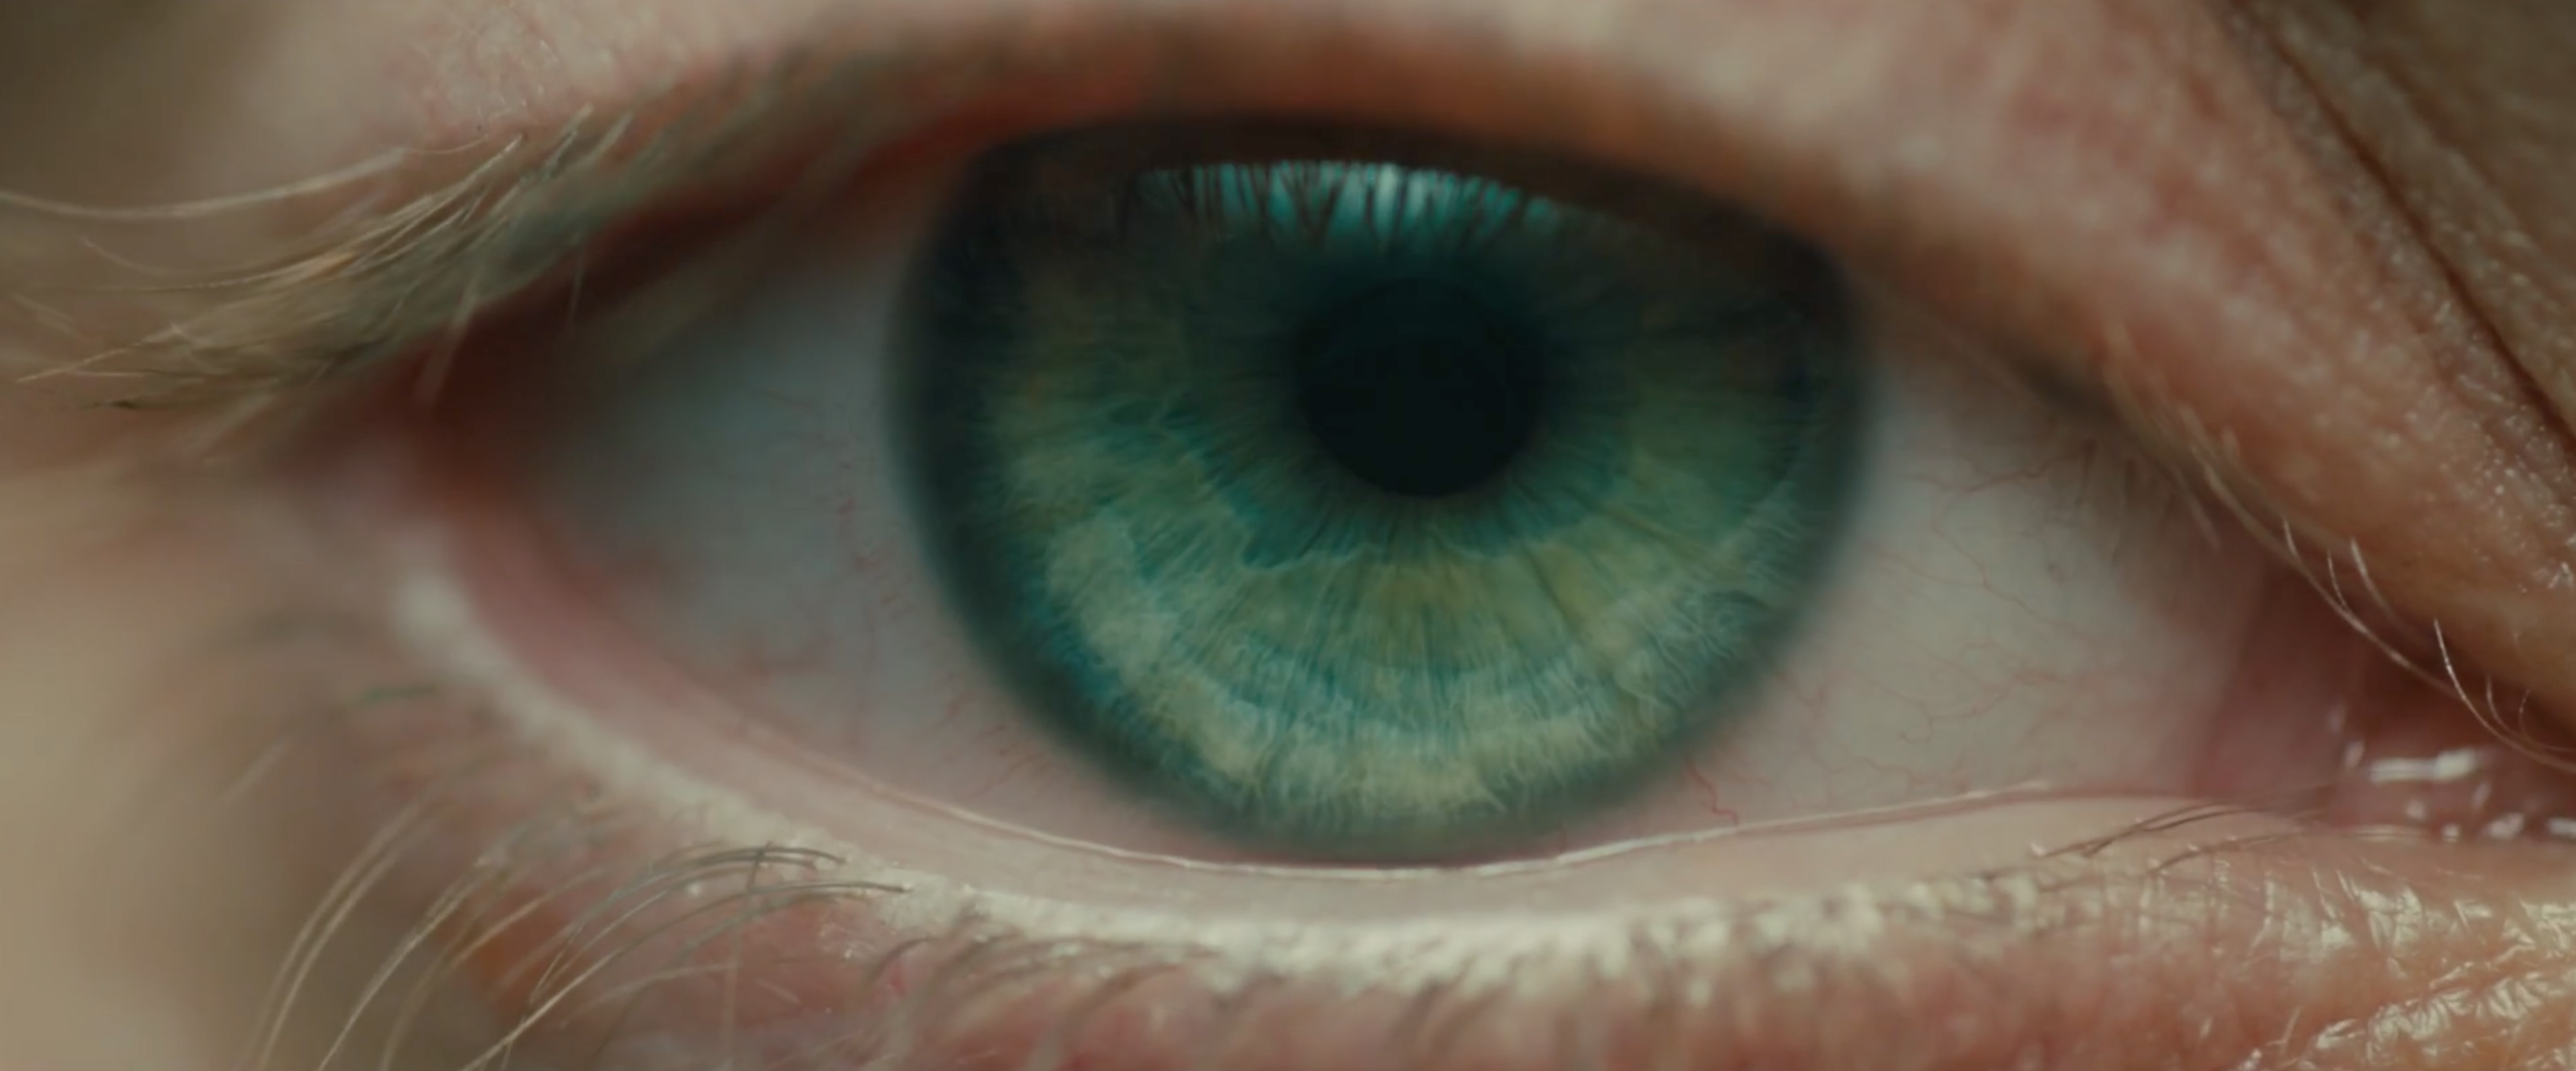 Blade Runner 2049 trailer and a first look at Roger ...